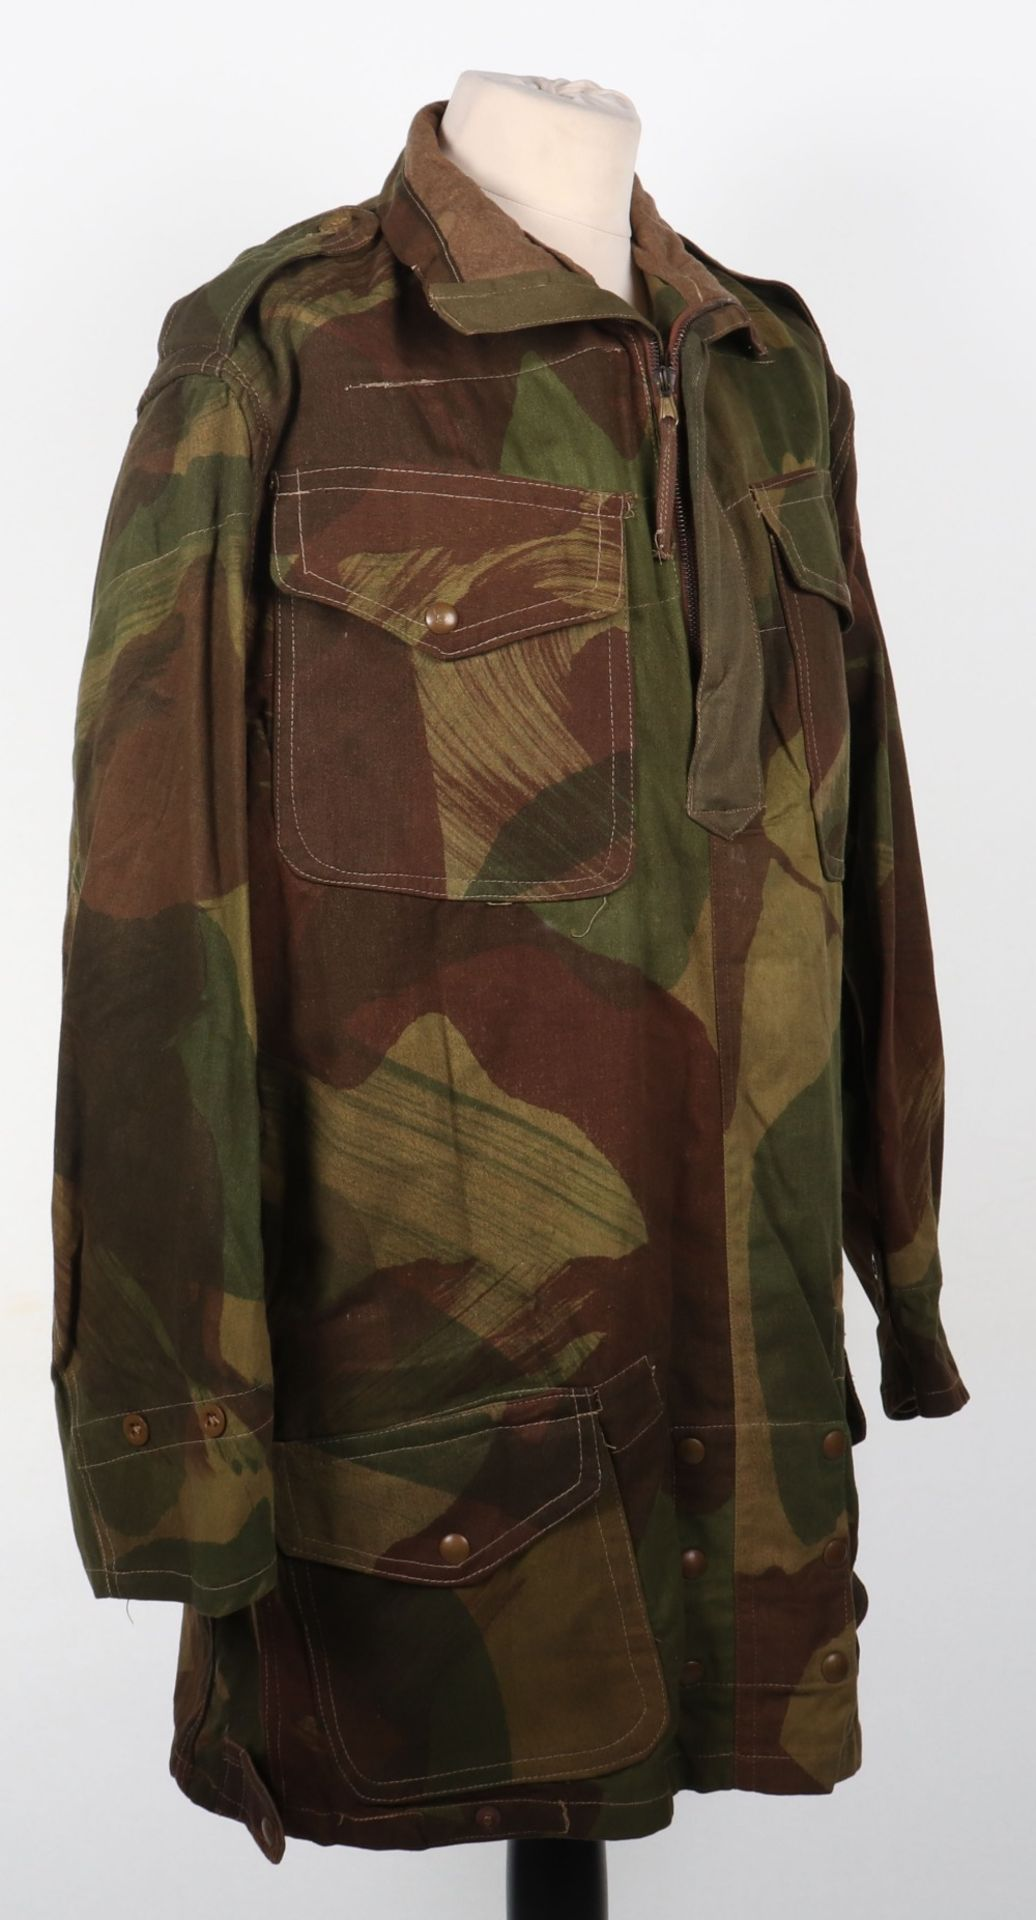 Mint Condition Large Size Airborne Forces Denison Smock - Image 7 of 17